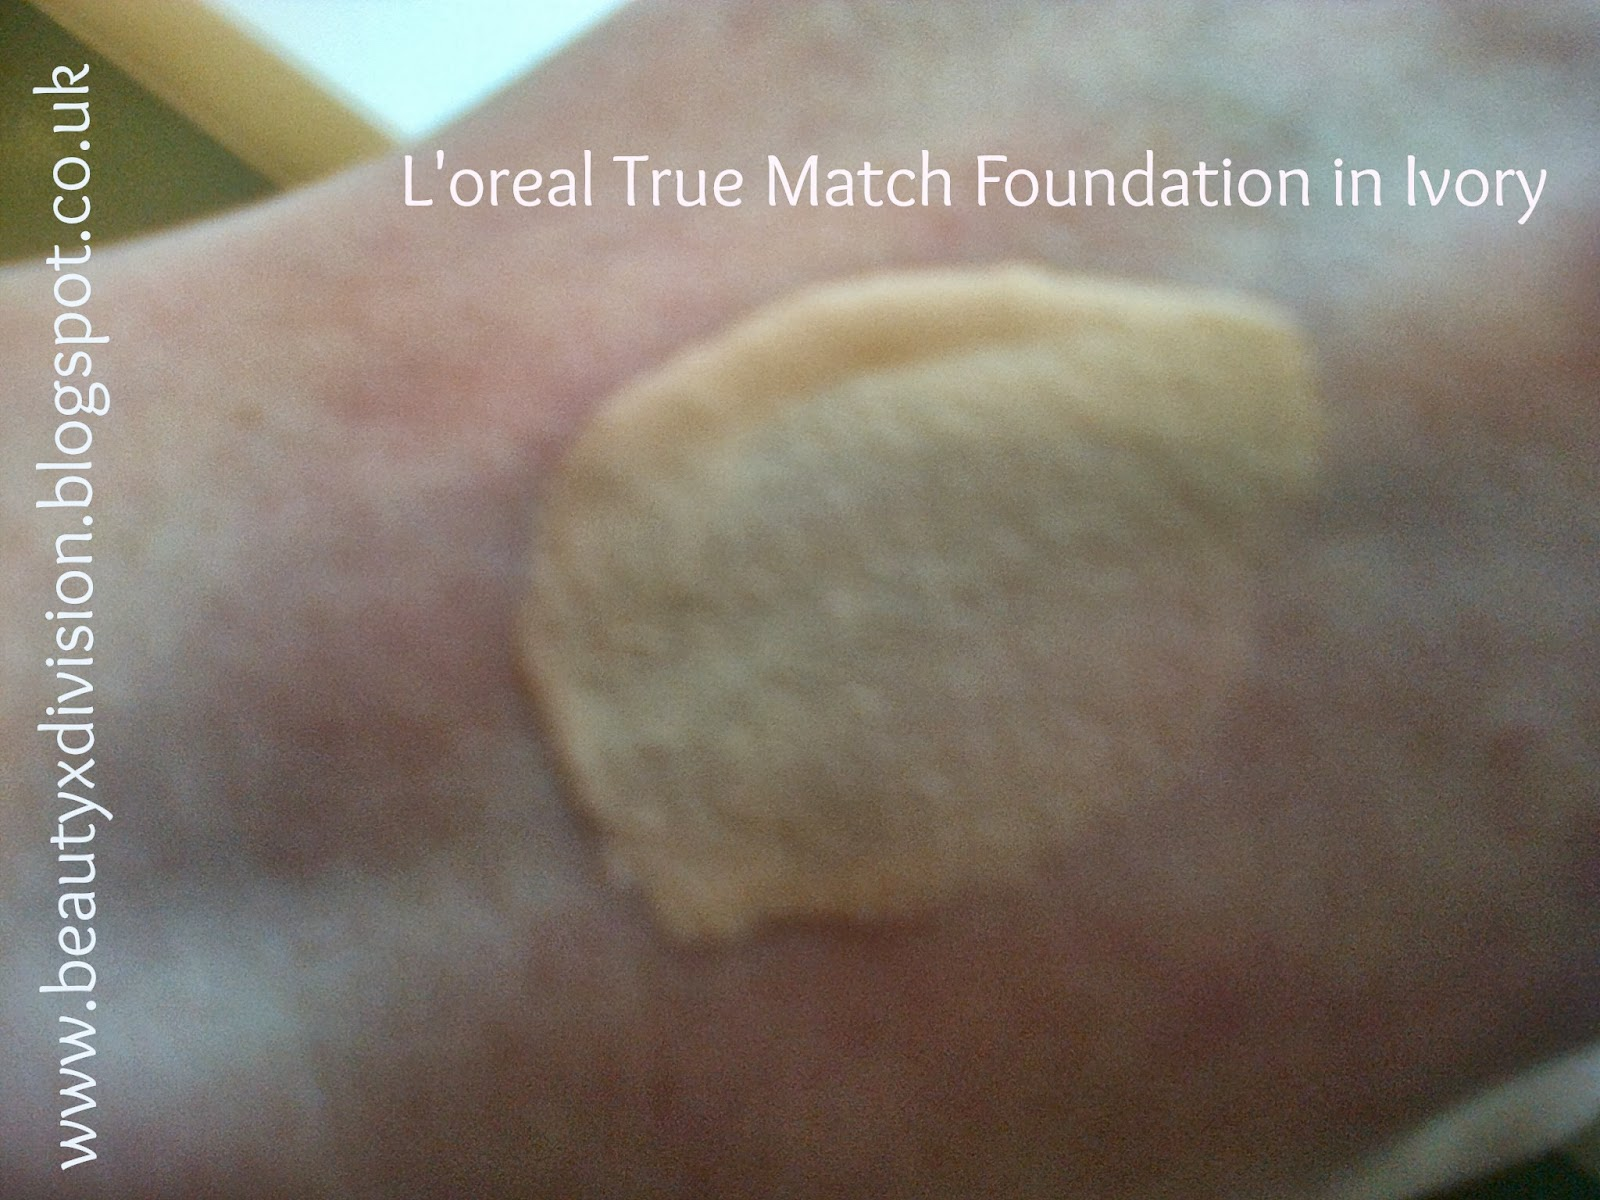 L'oreal True Match Foundation Ivory Swatch